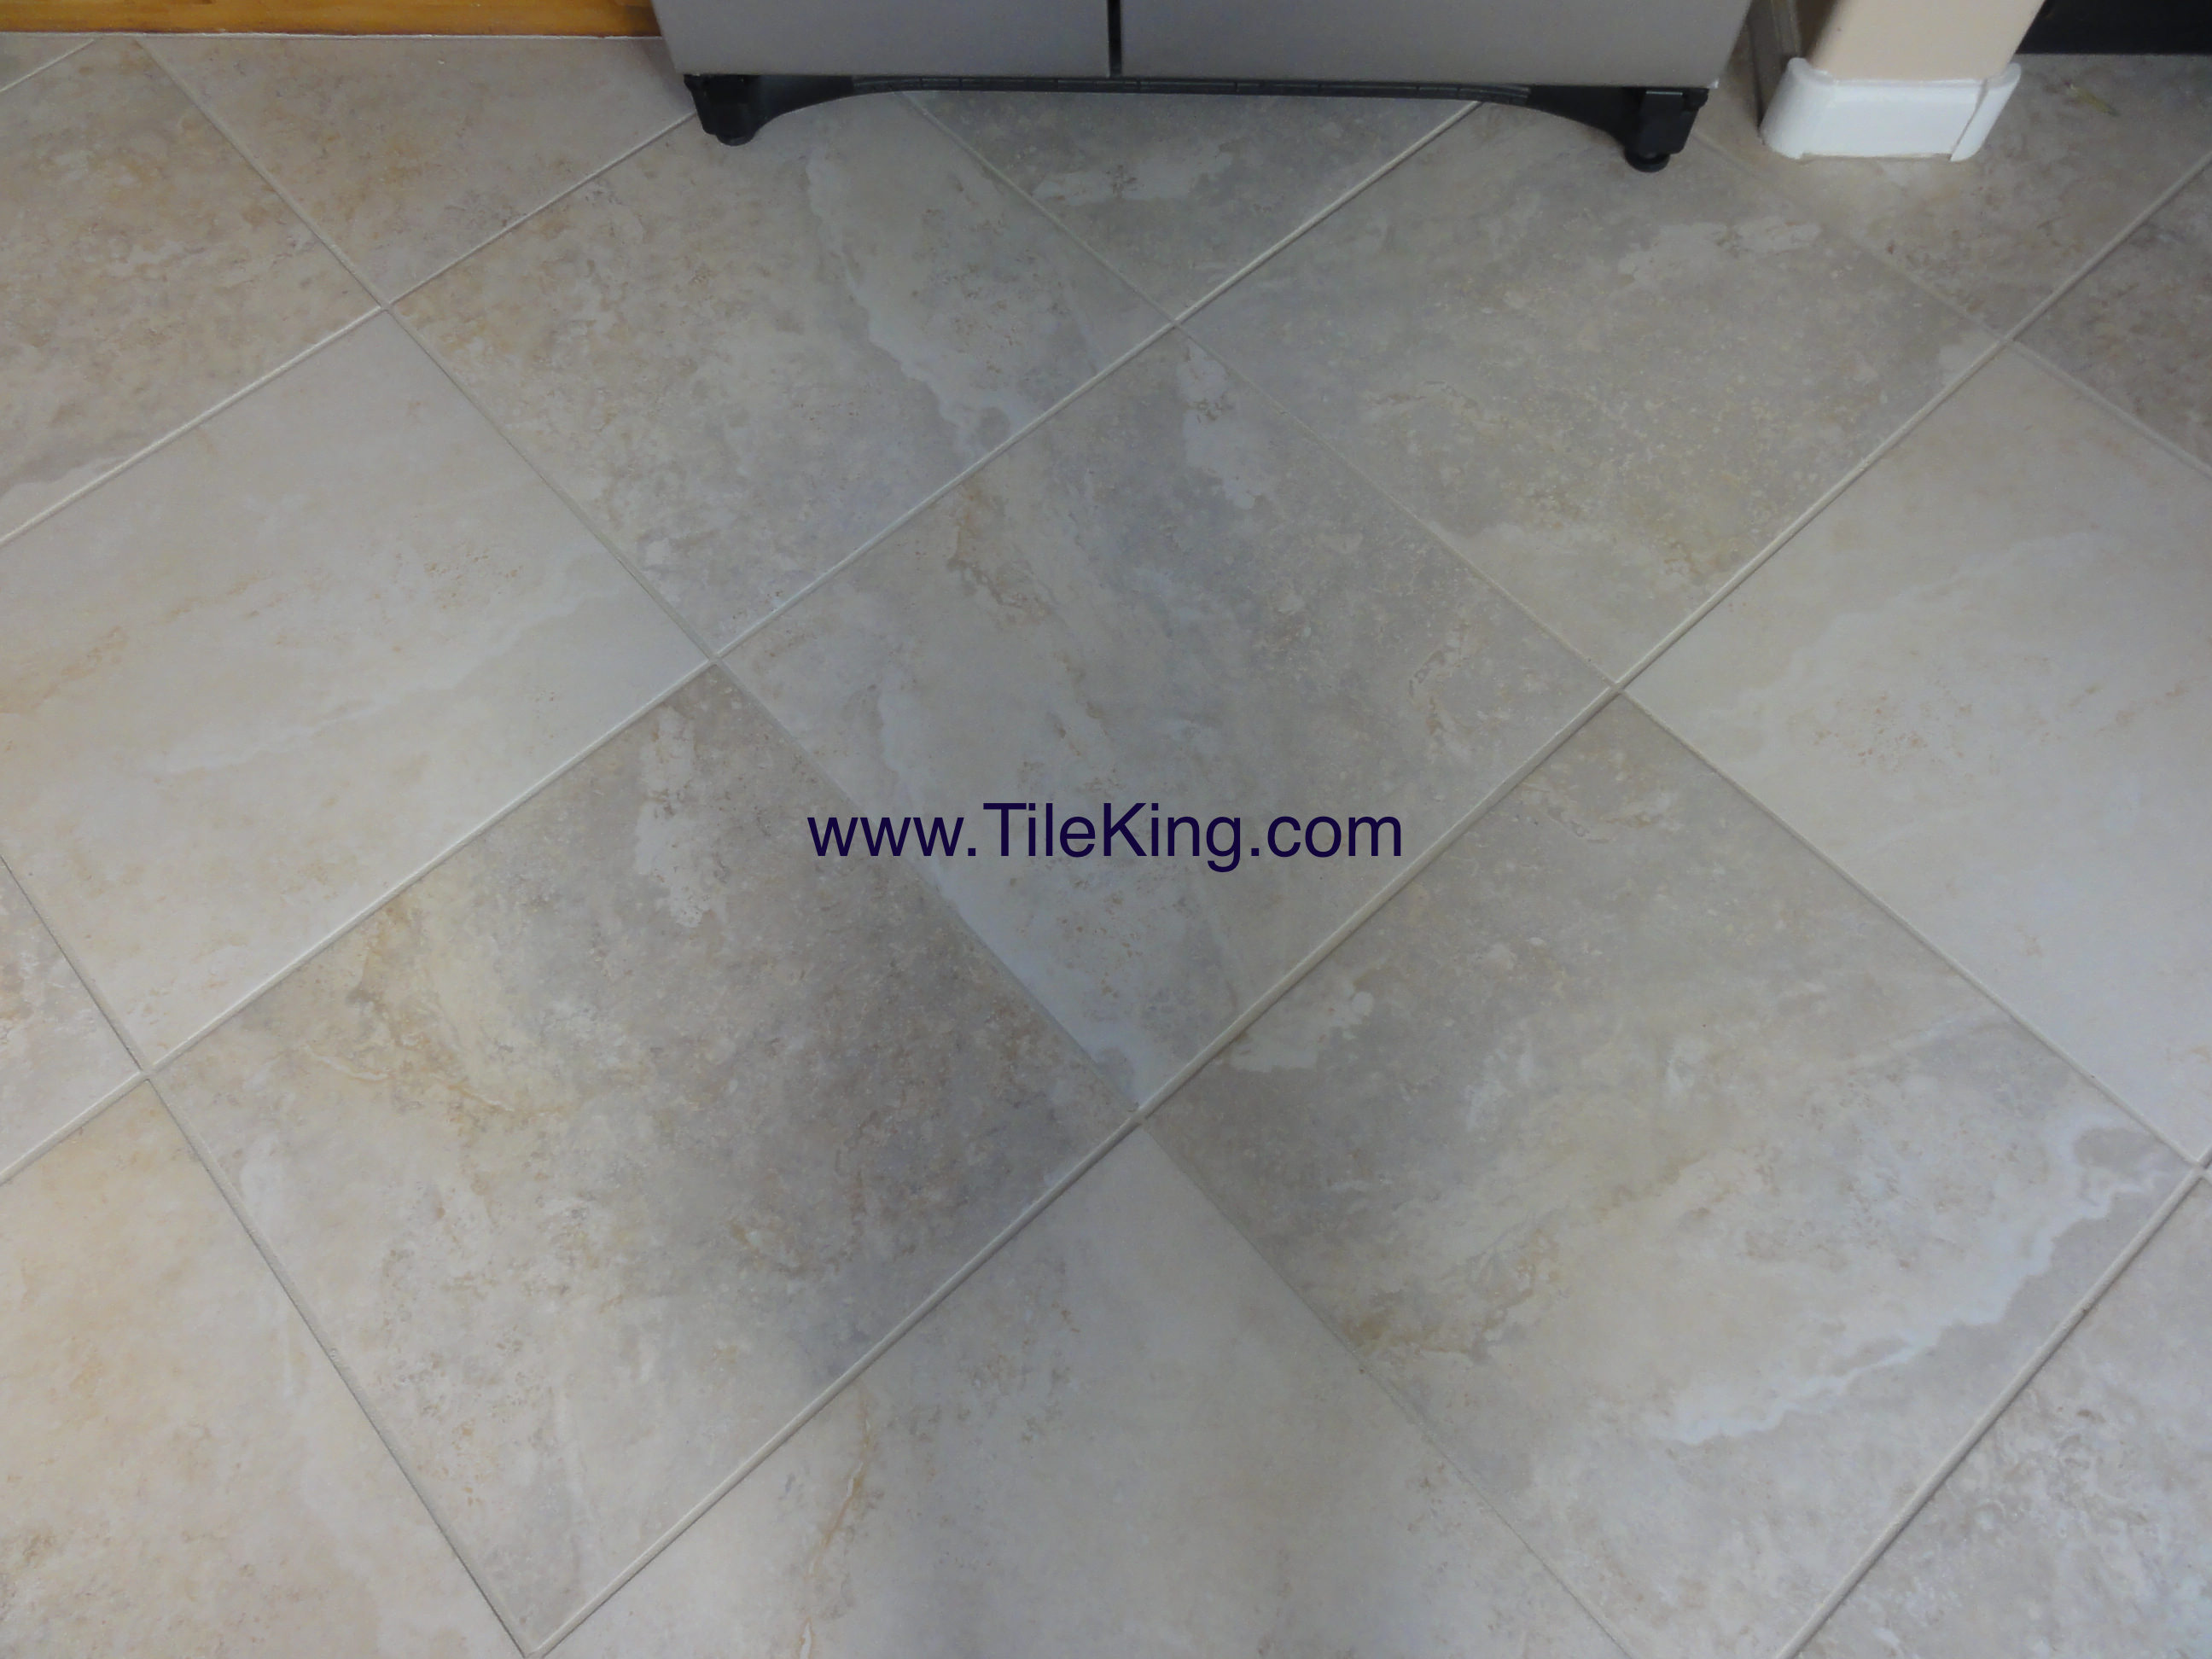 travertine tile after cleaning and sealing